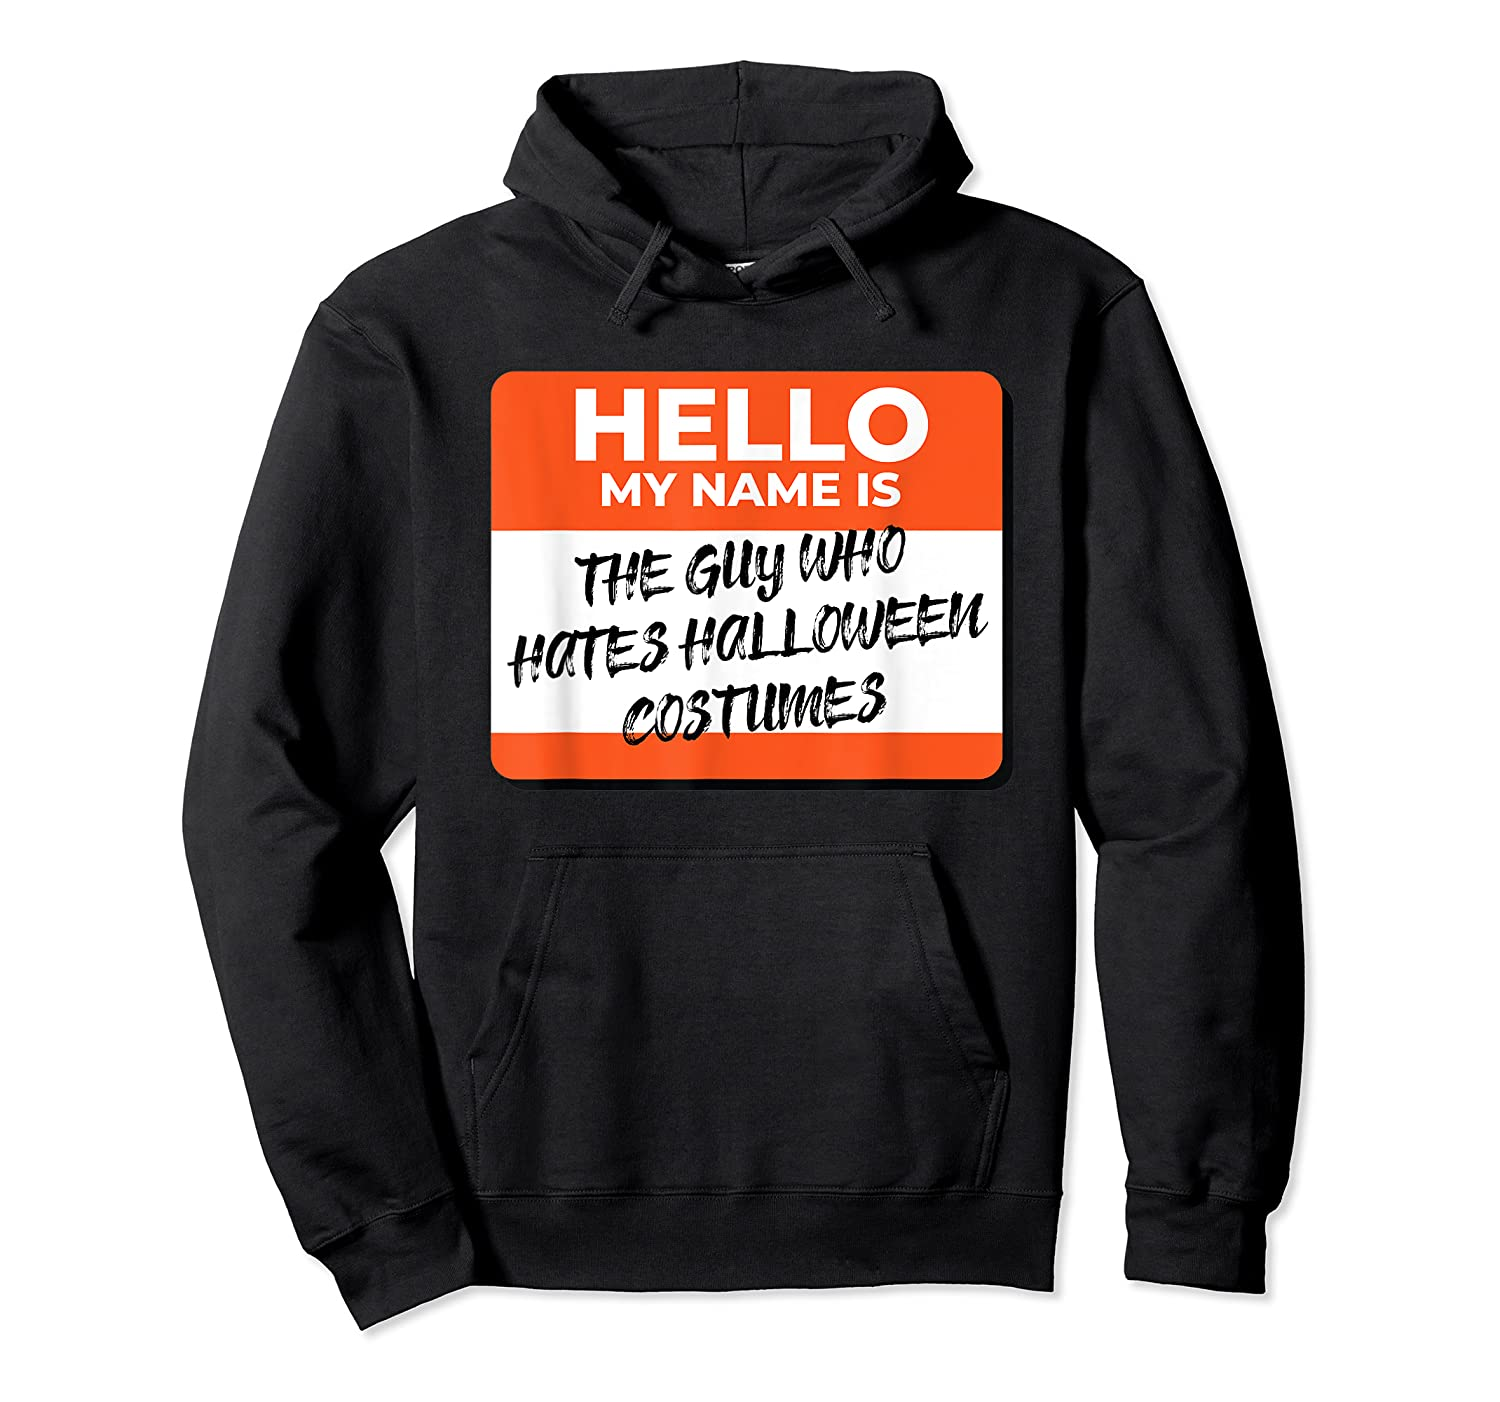 Halloween Inspired Design For Horror Lovers Shirts Unisex Pullover Hoodie